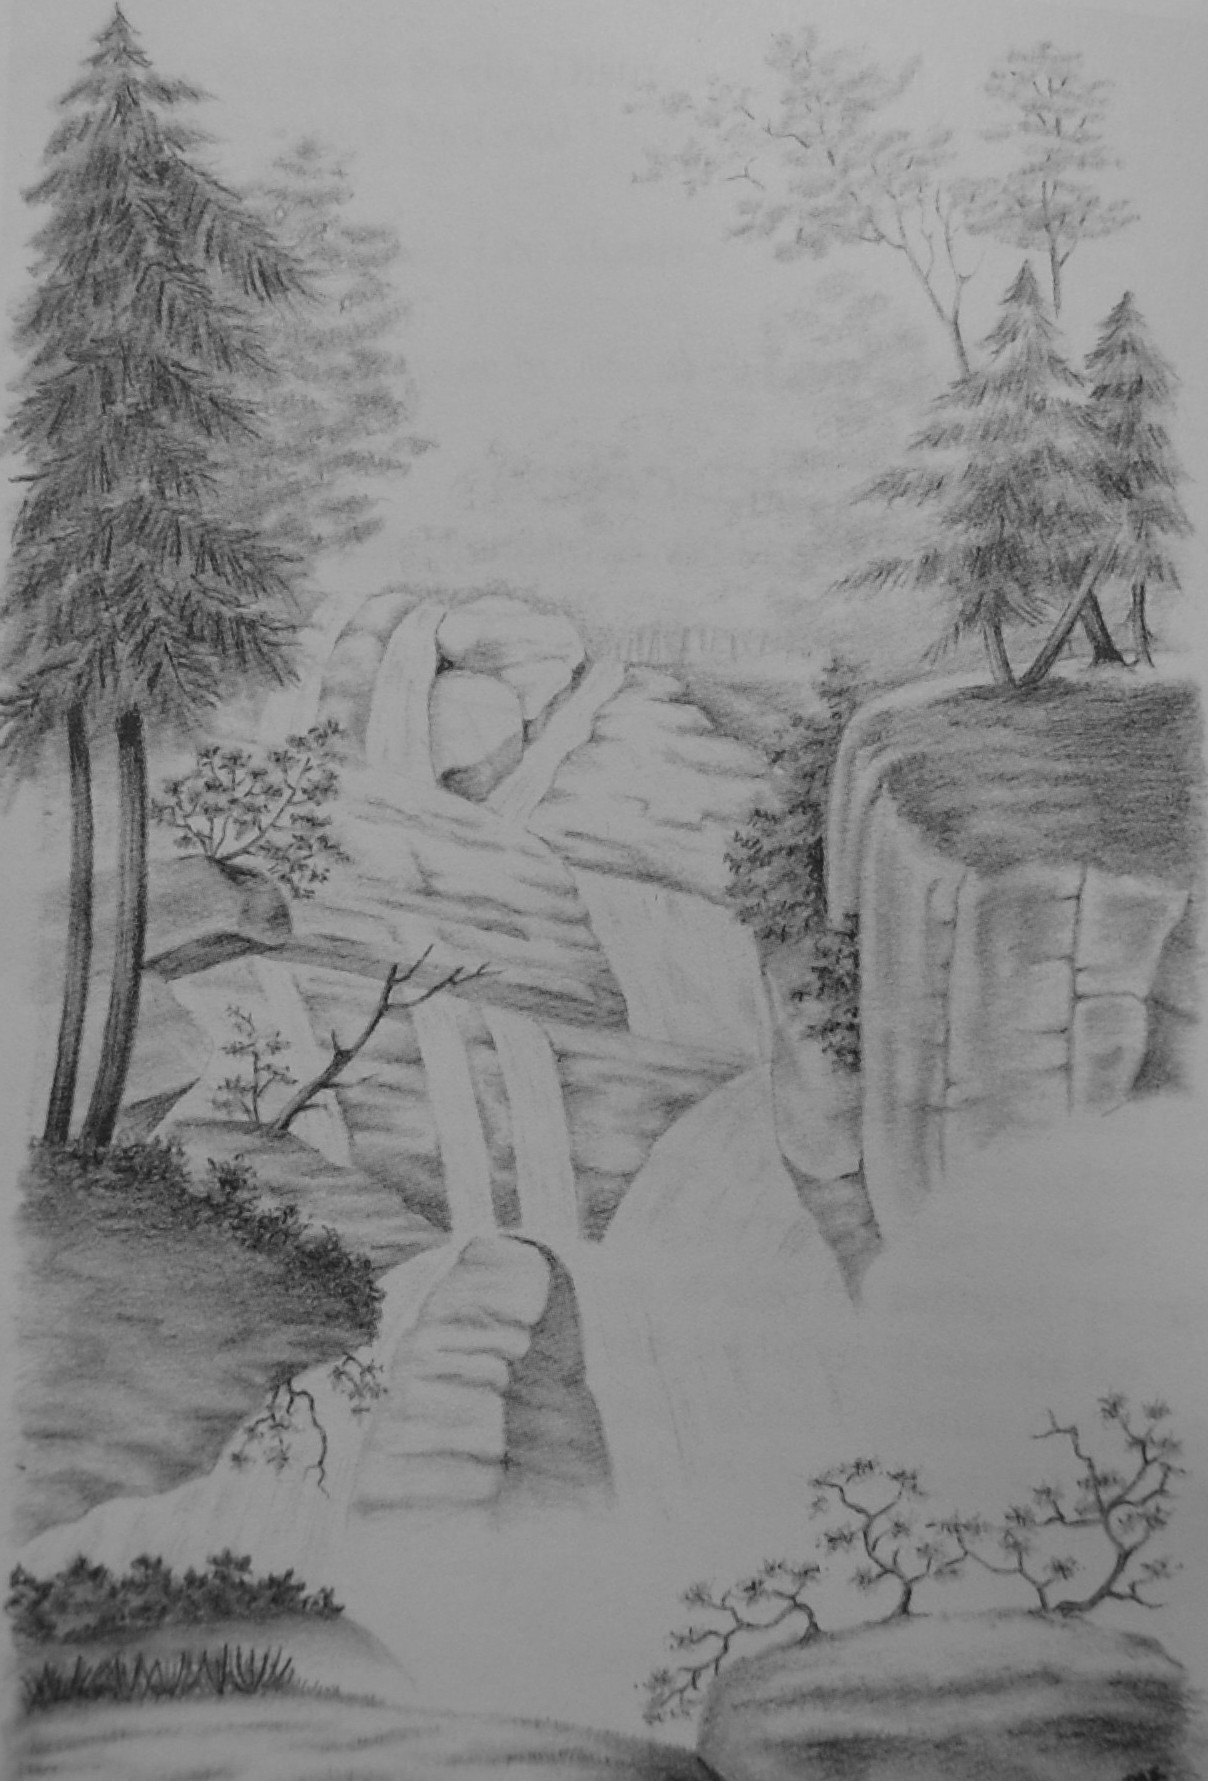 Black and white pencil sketch of Crabtree Falls in Virginia